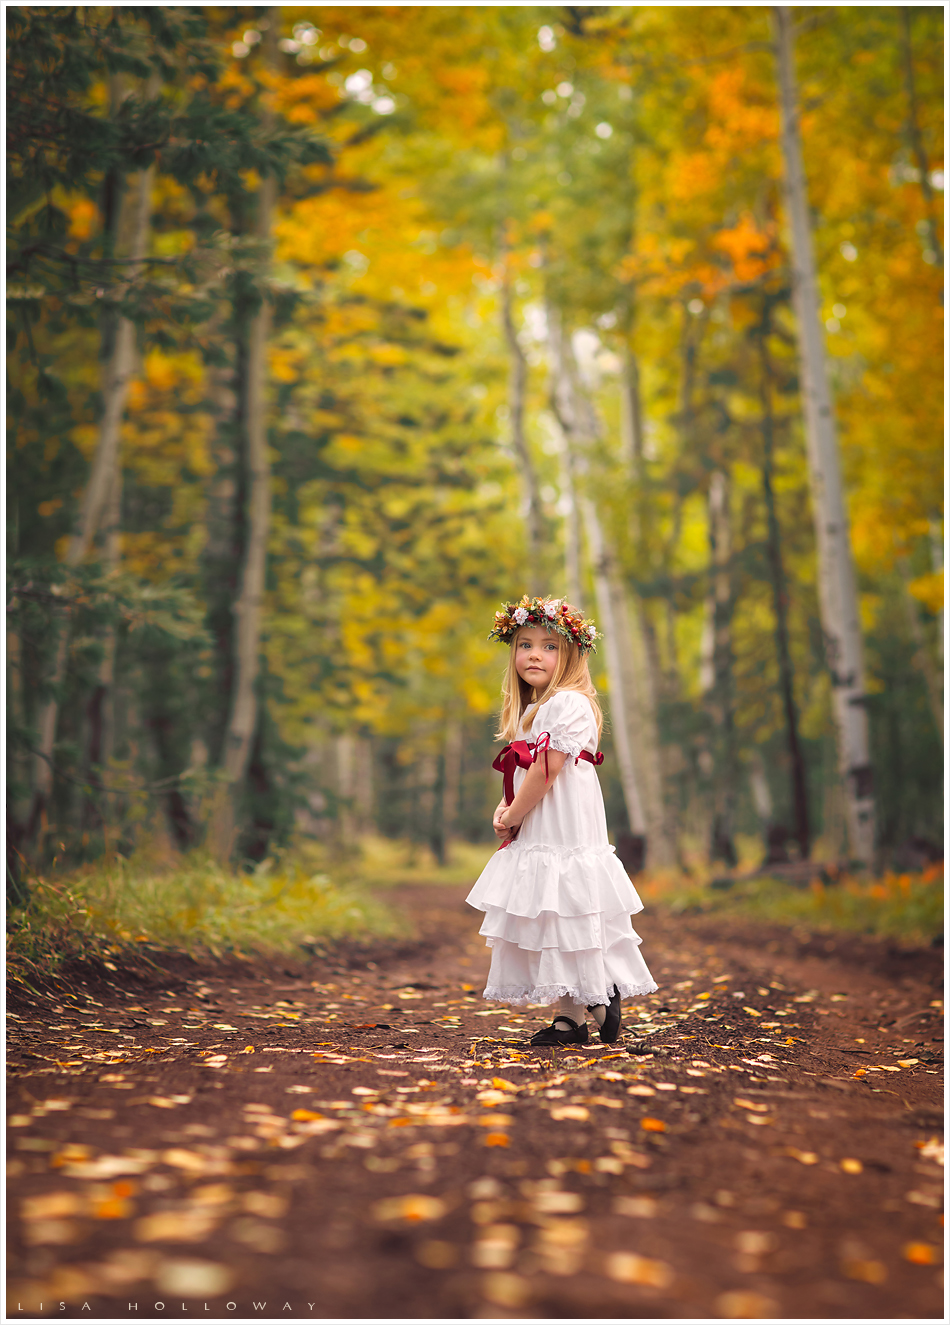 Adorable little blonde girl models a red and white Christmas dress in the fall aspen trees. LJHolloway Photography is a Las Vegas Child Photographer.